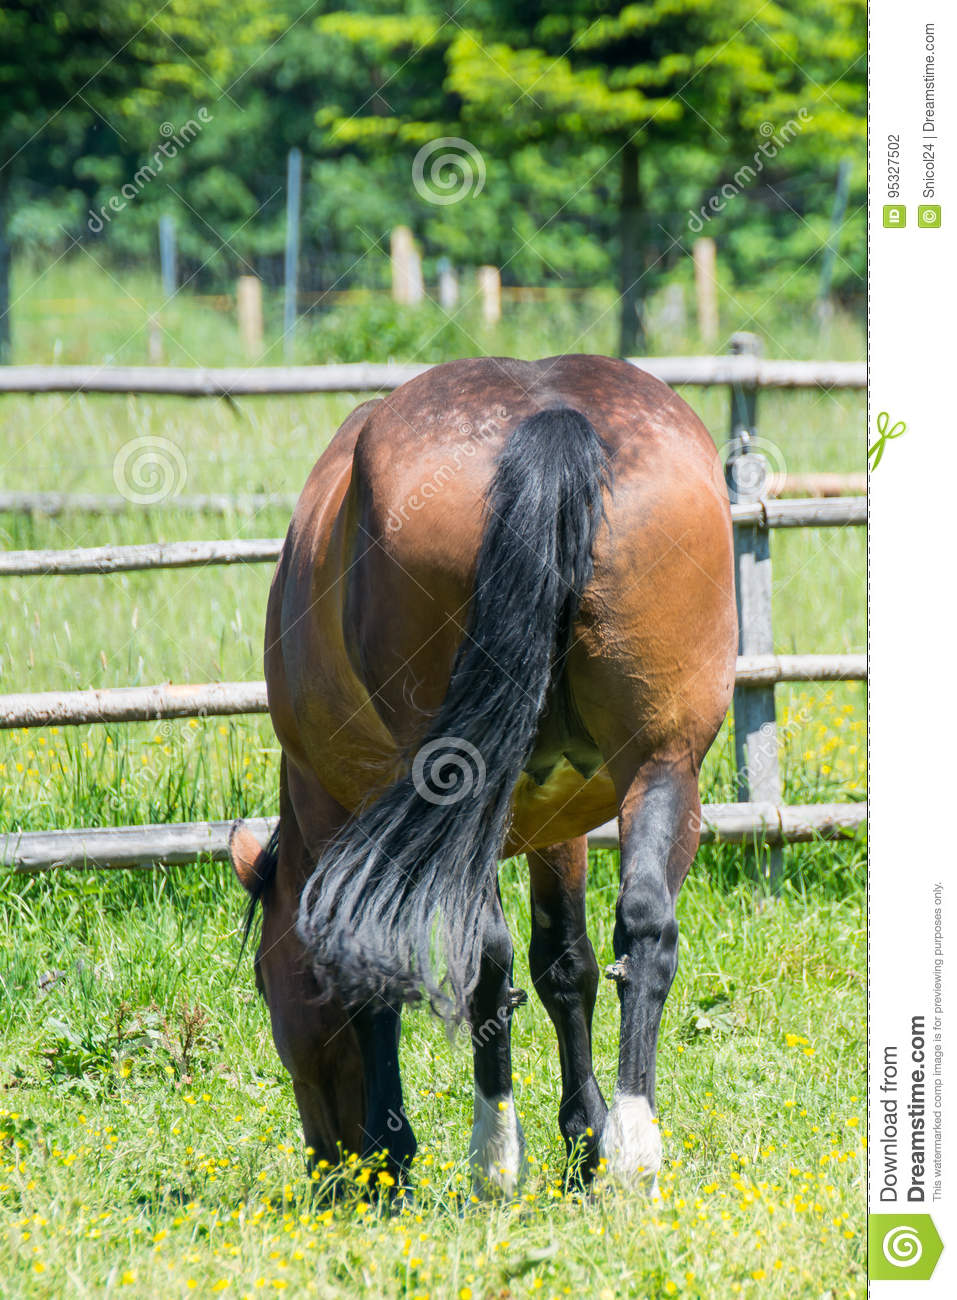 Horse arse stock photo. Image of eating, tail, brown